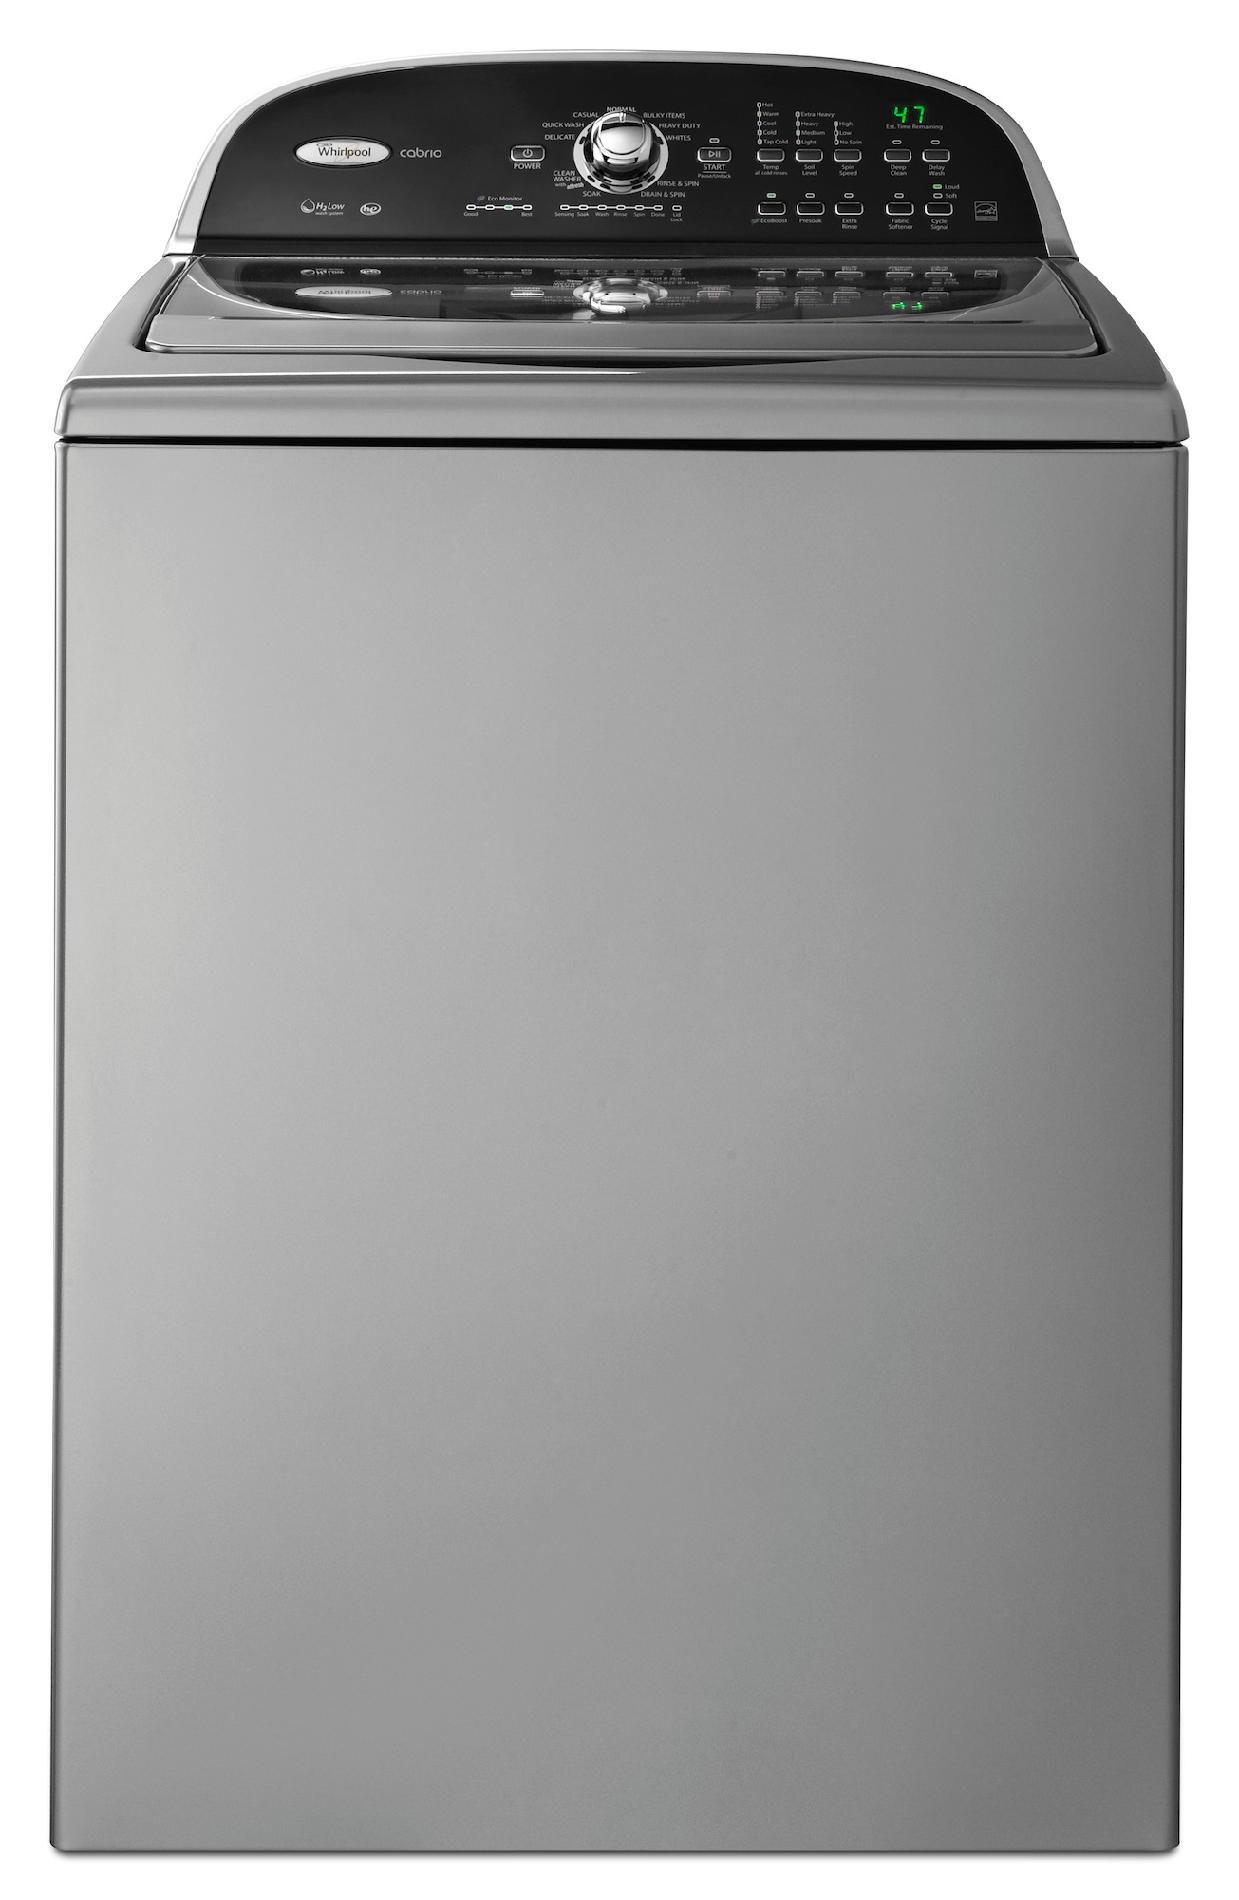 model 7mwt96700sq1 whirlpool automatic washer